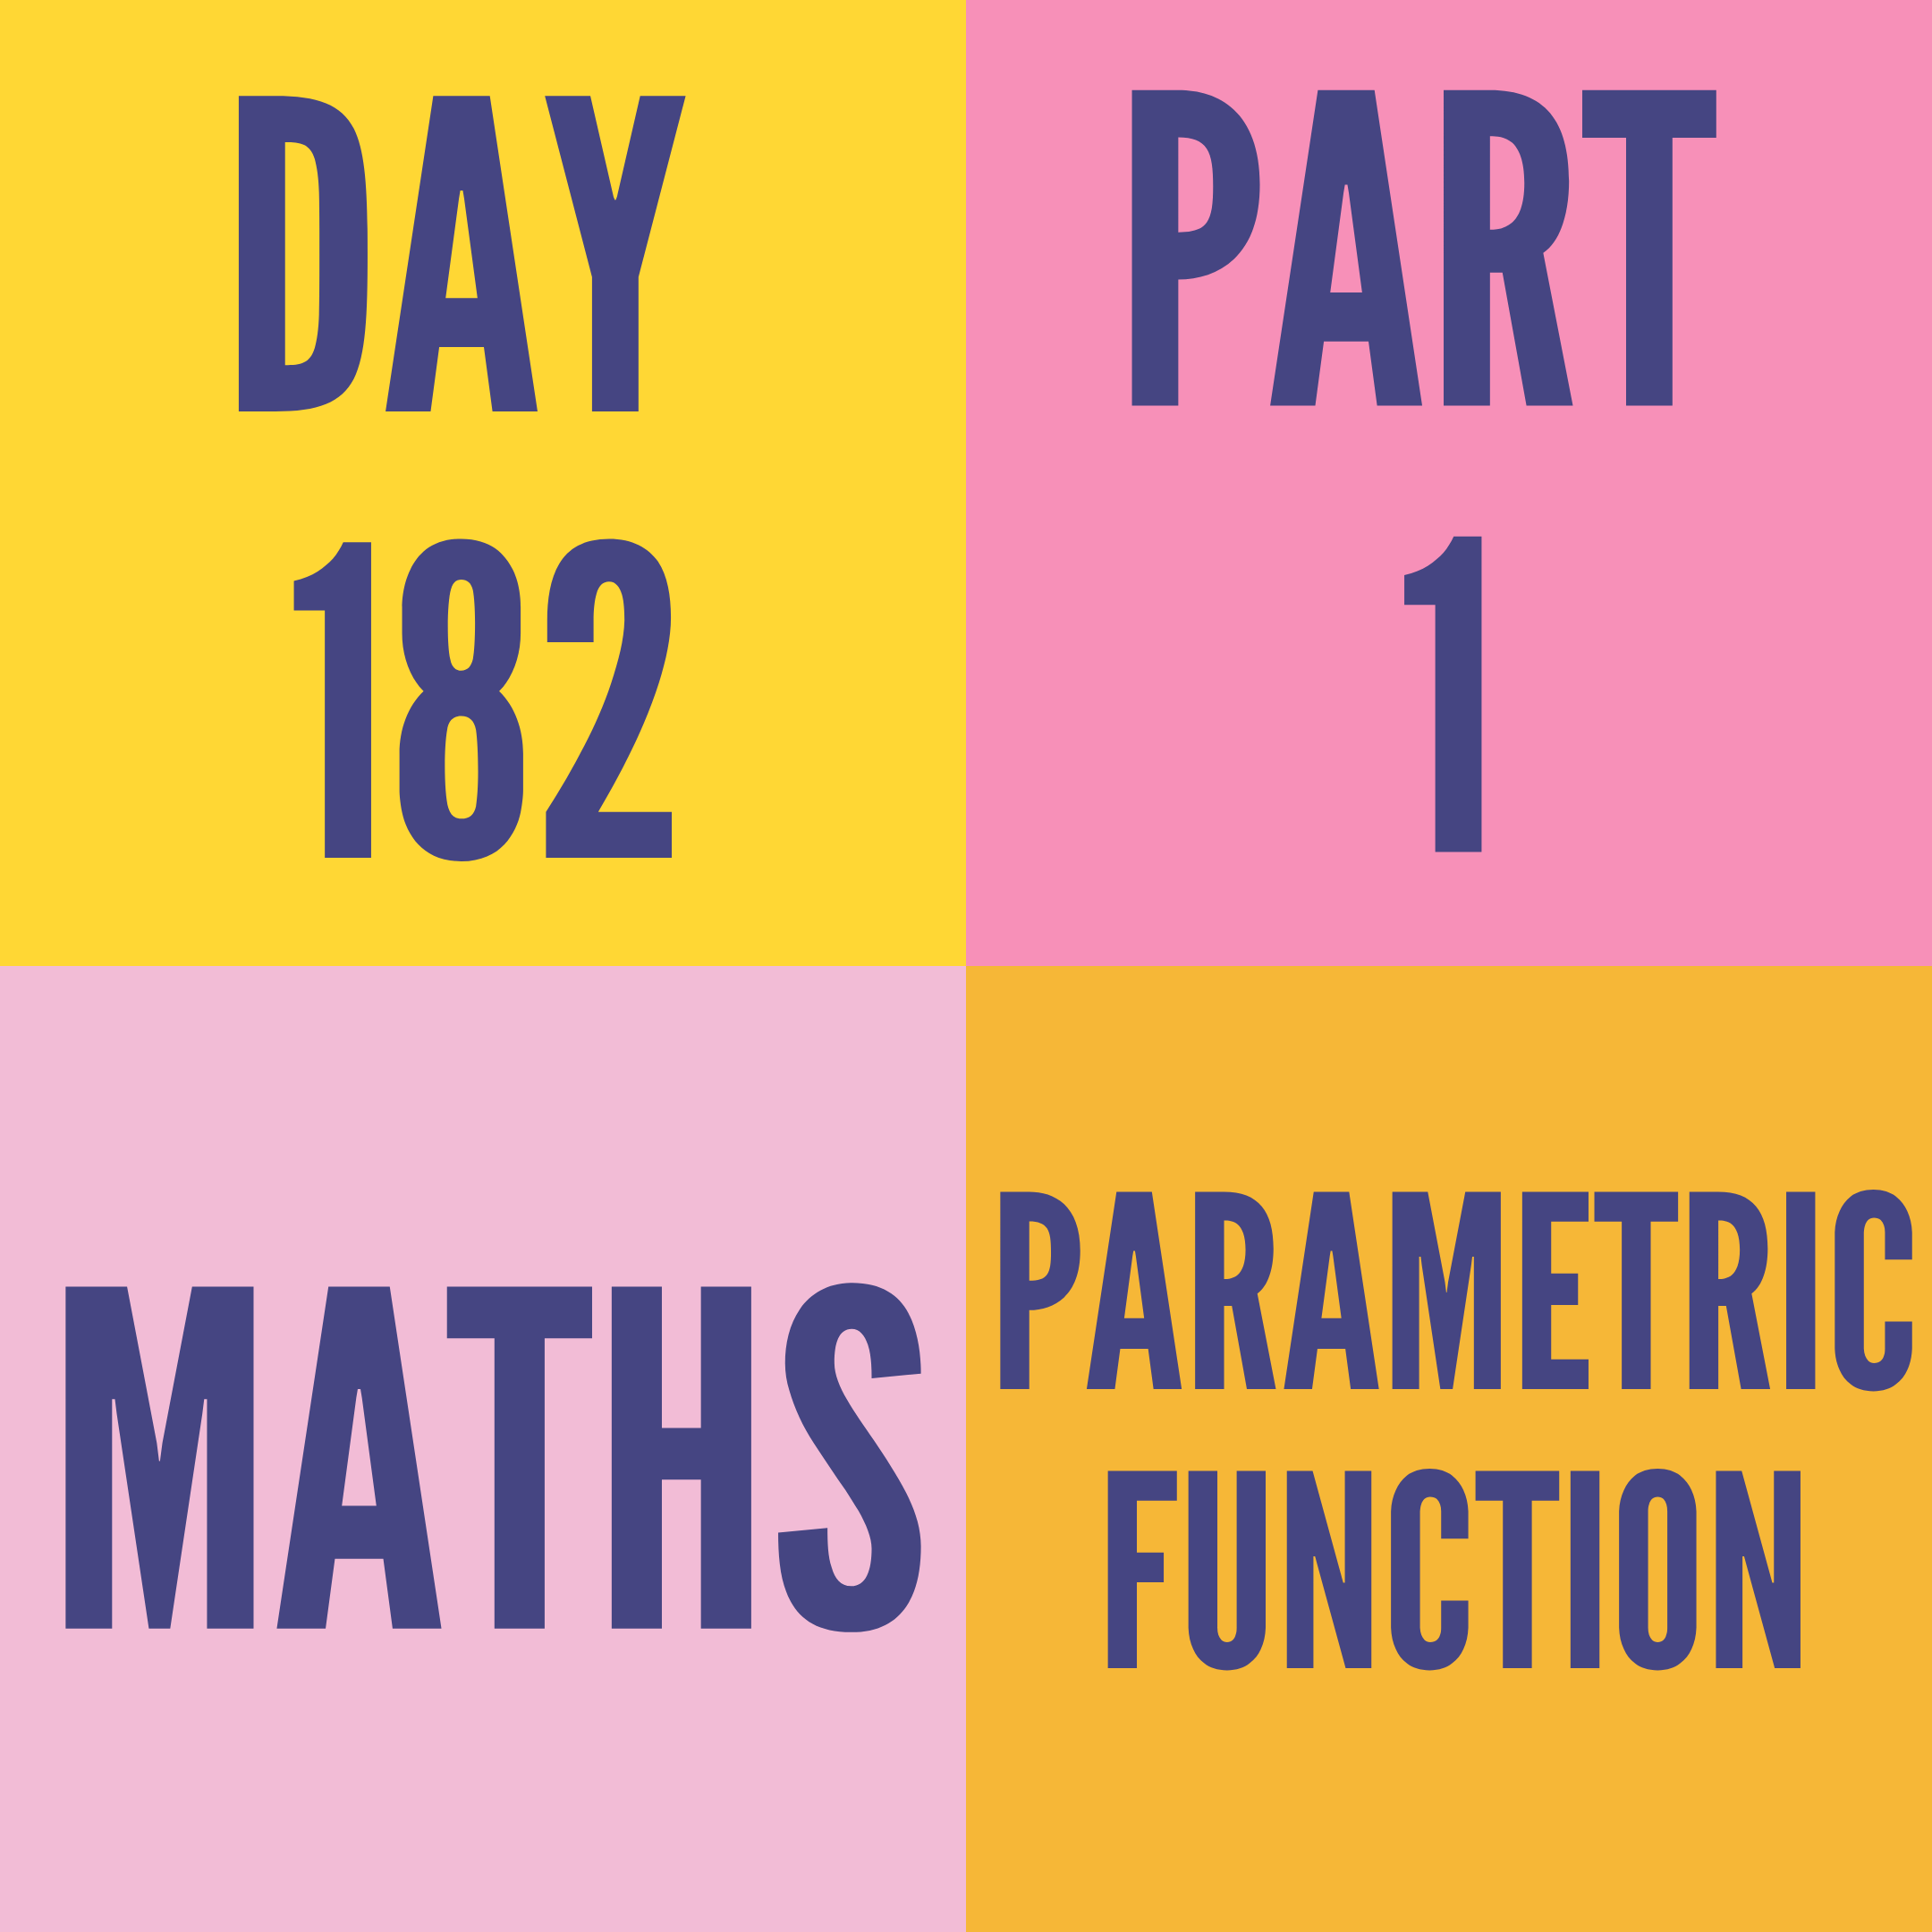 DAY-182 PART-1 PARAMETRIC FUNCTION